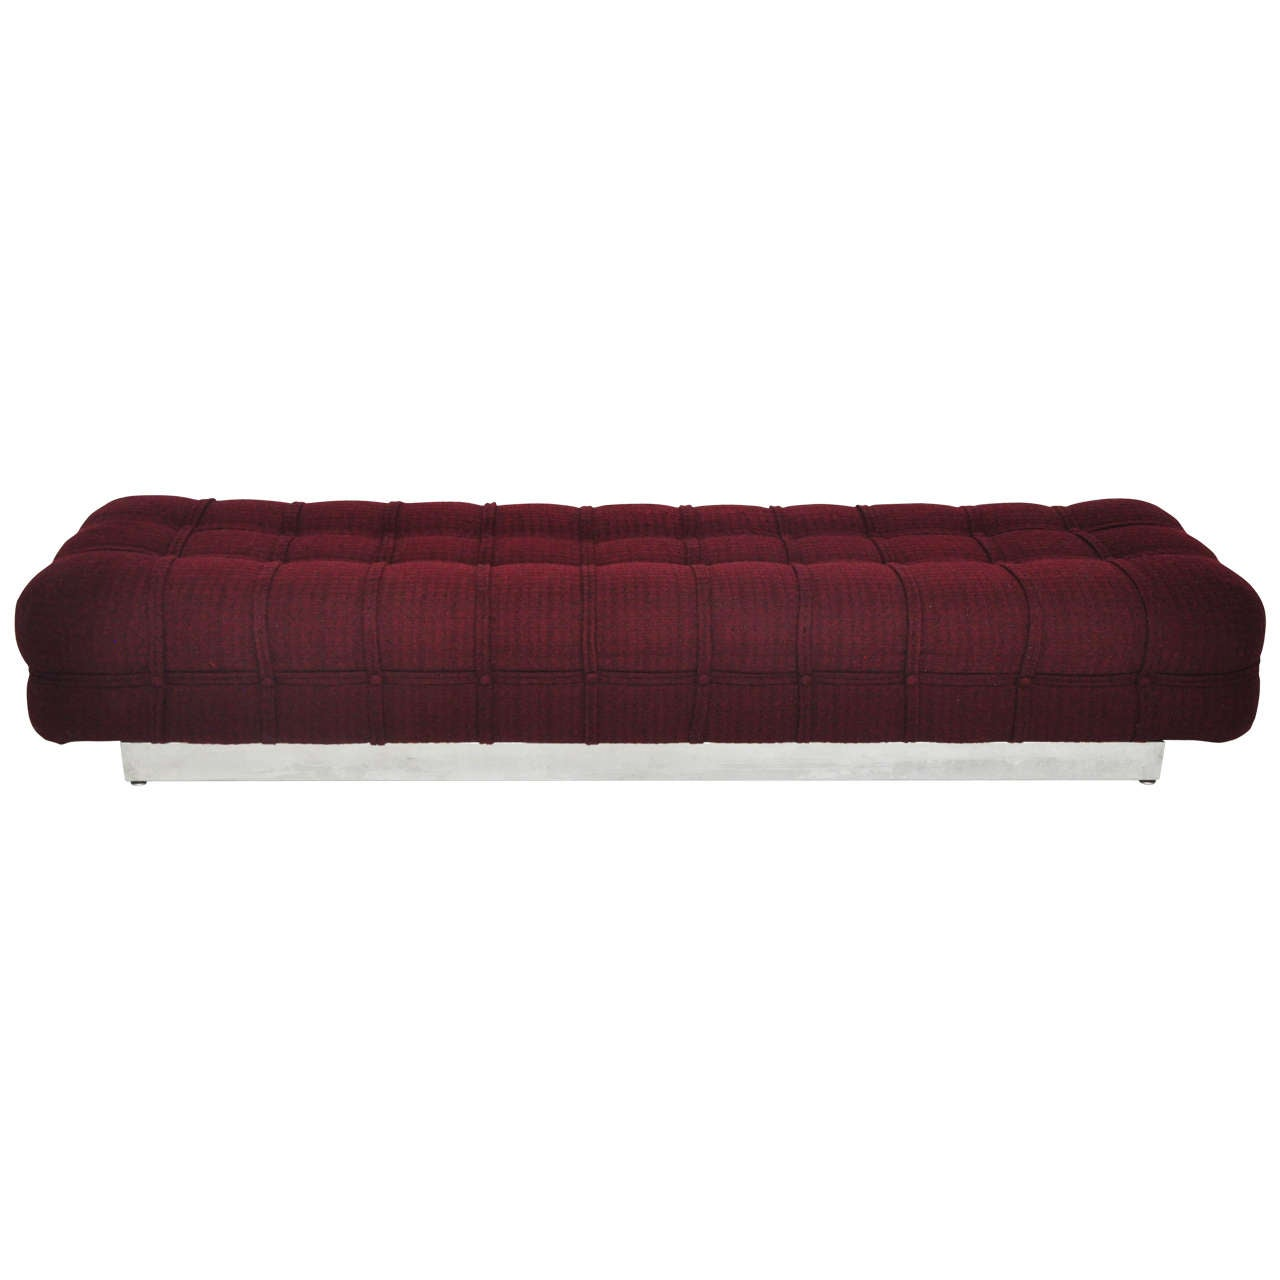 1960s Tufted Bench On Stainless Steel Base At 1stdibs